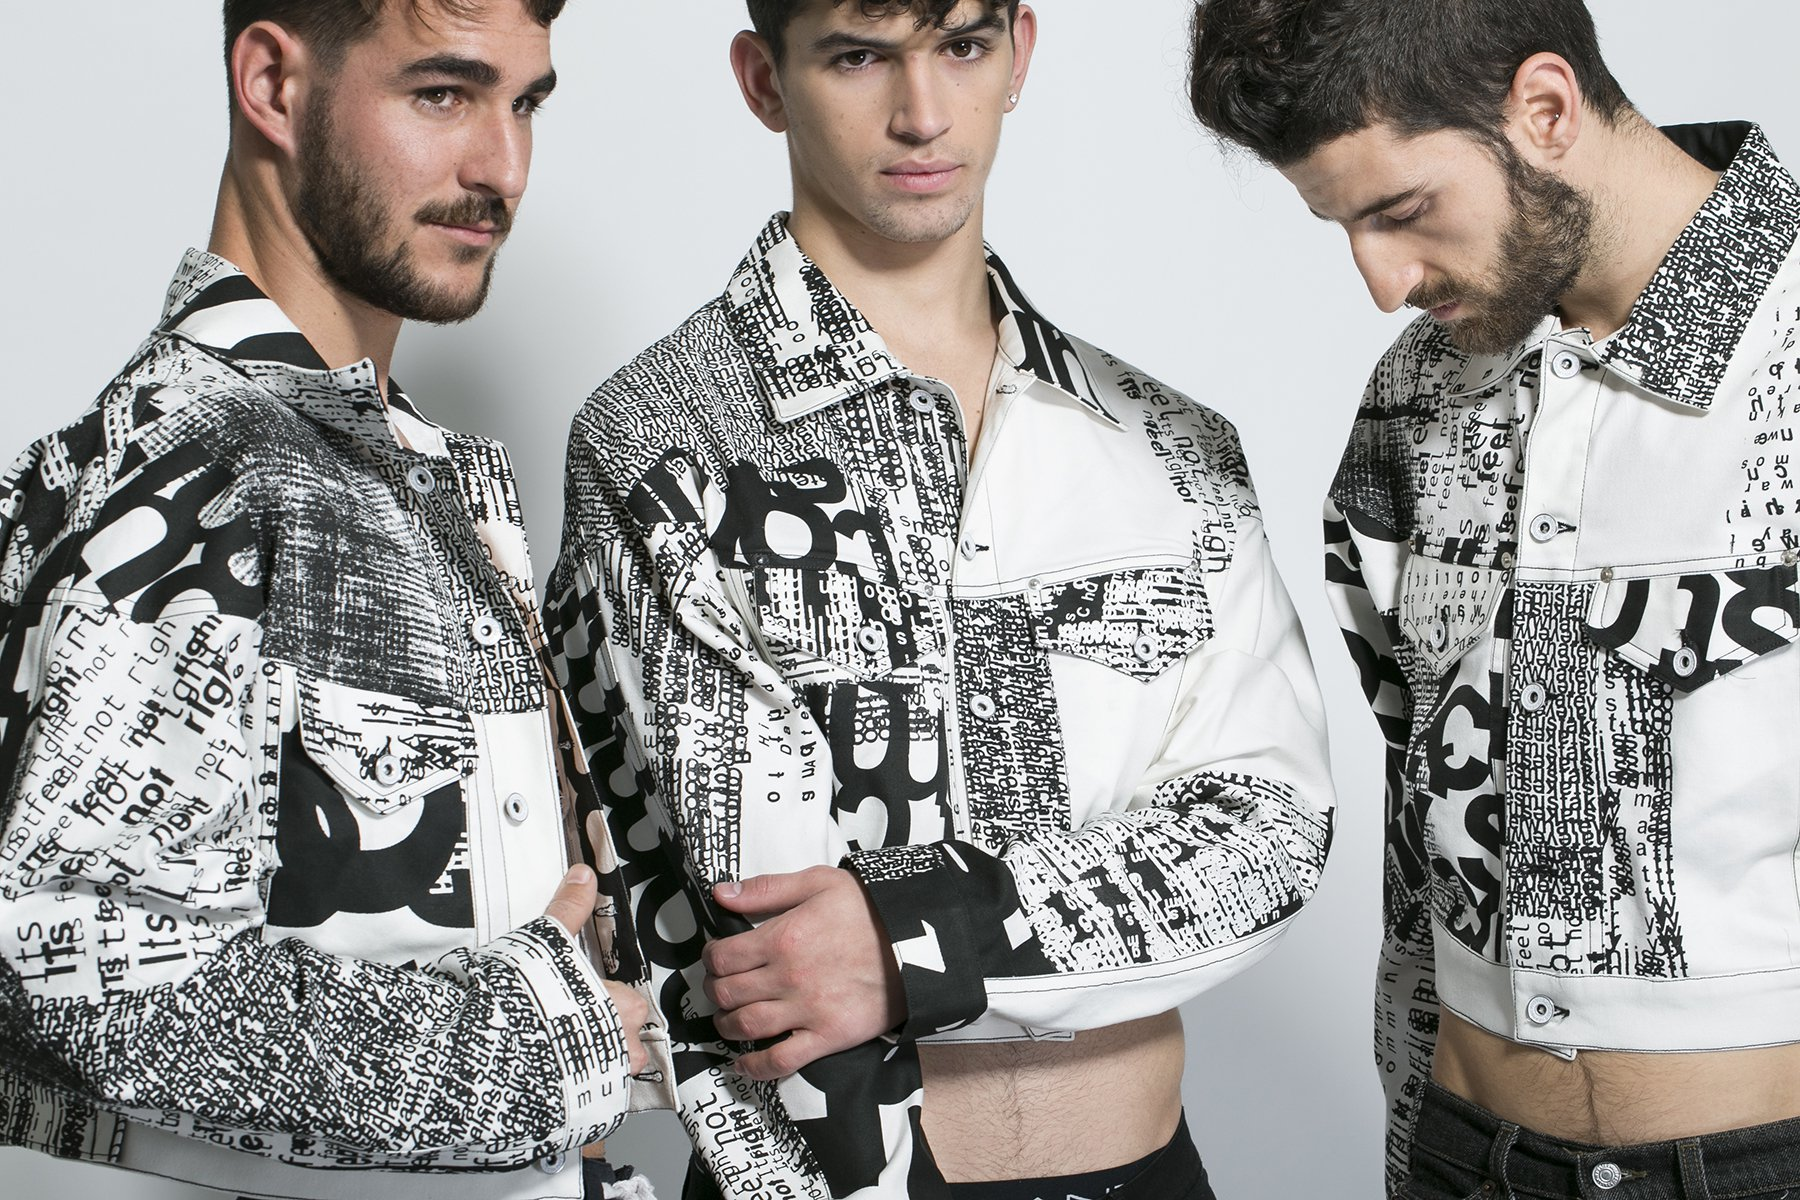 """designboom - """"Disruption jackets represent the communicative difficulties of international students""""Read More...."""